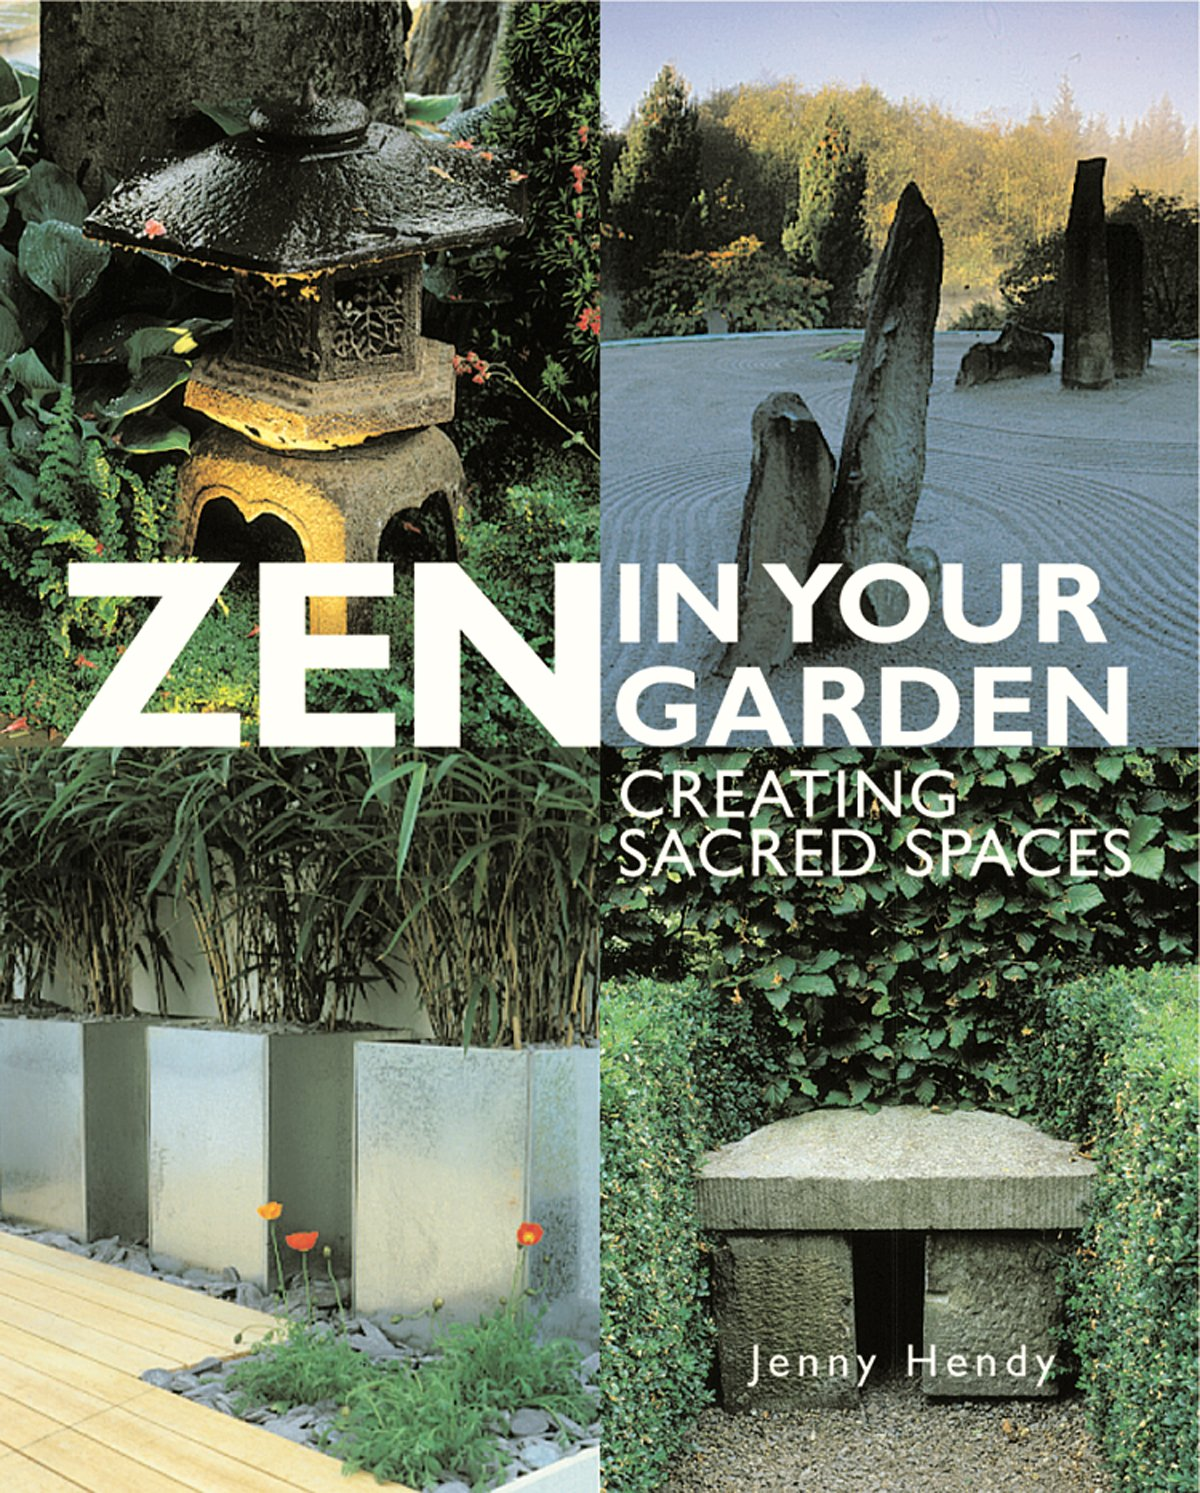 Zen in Your Garden: Creating Sacred Spaces pdf epub